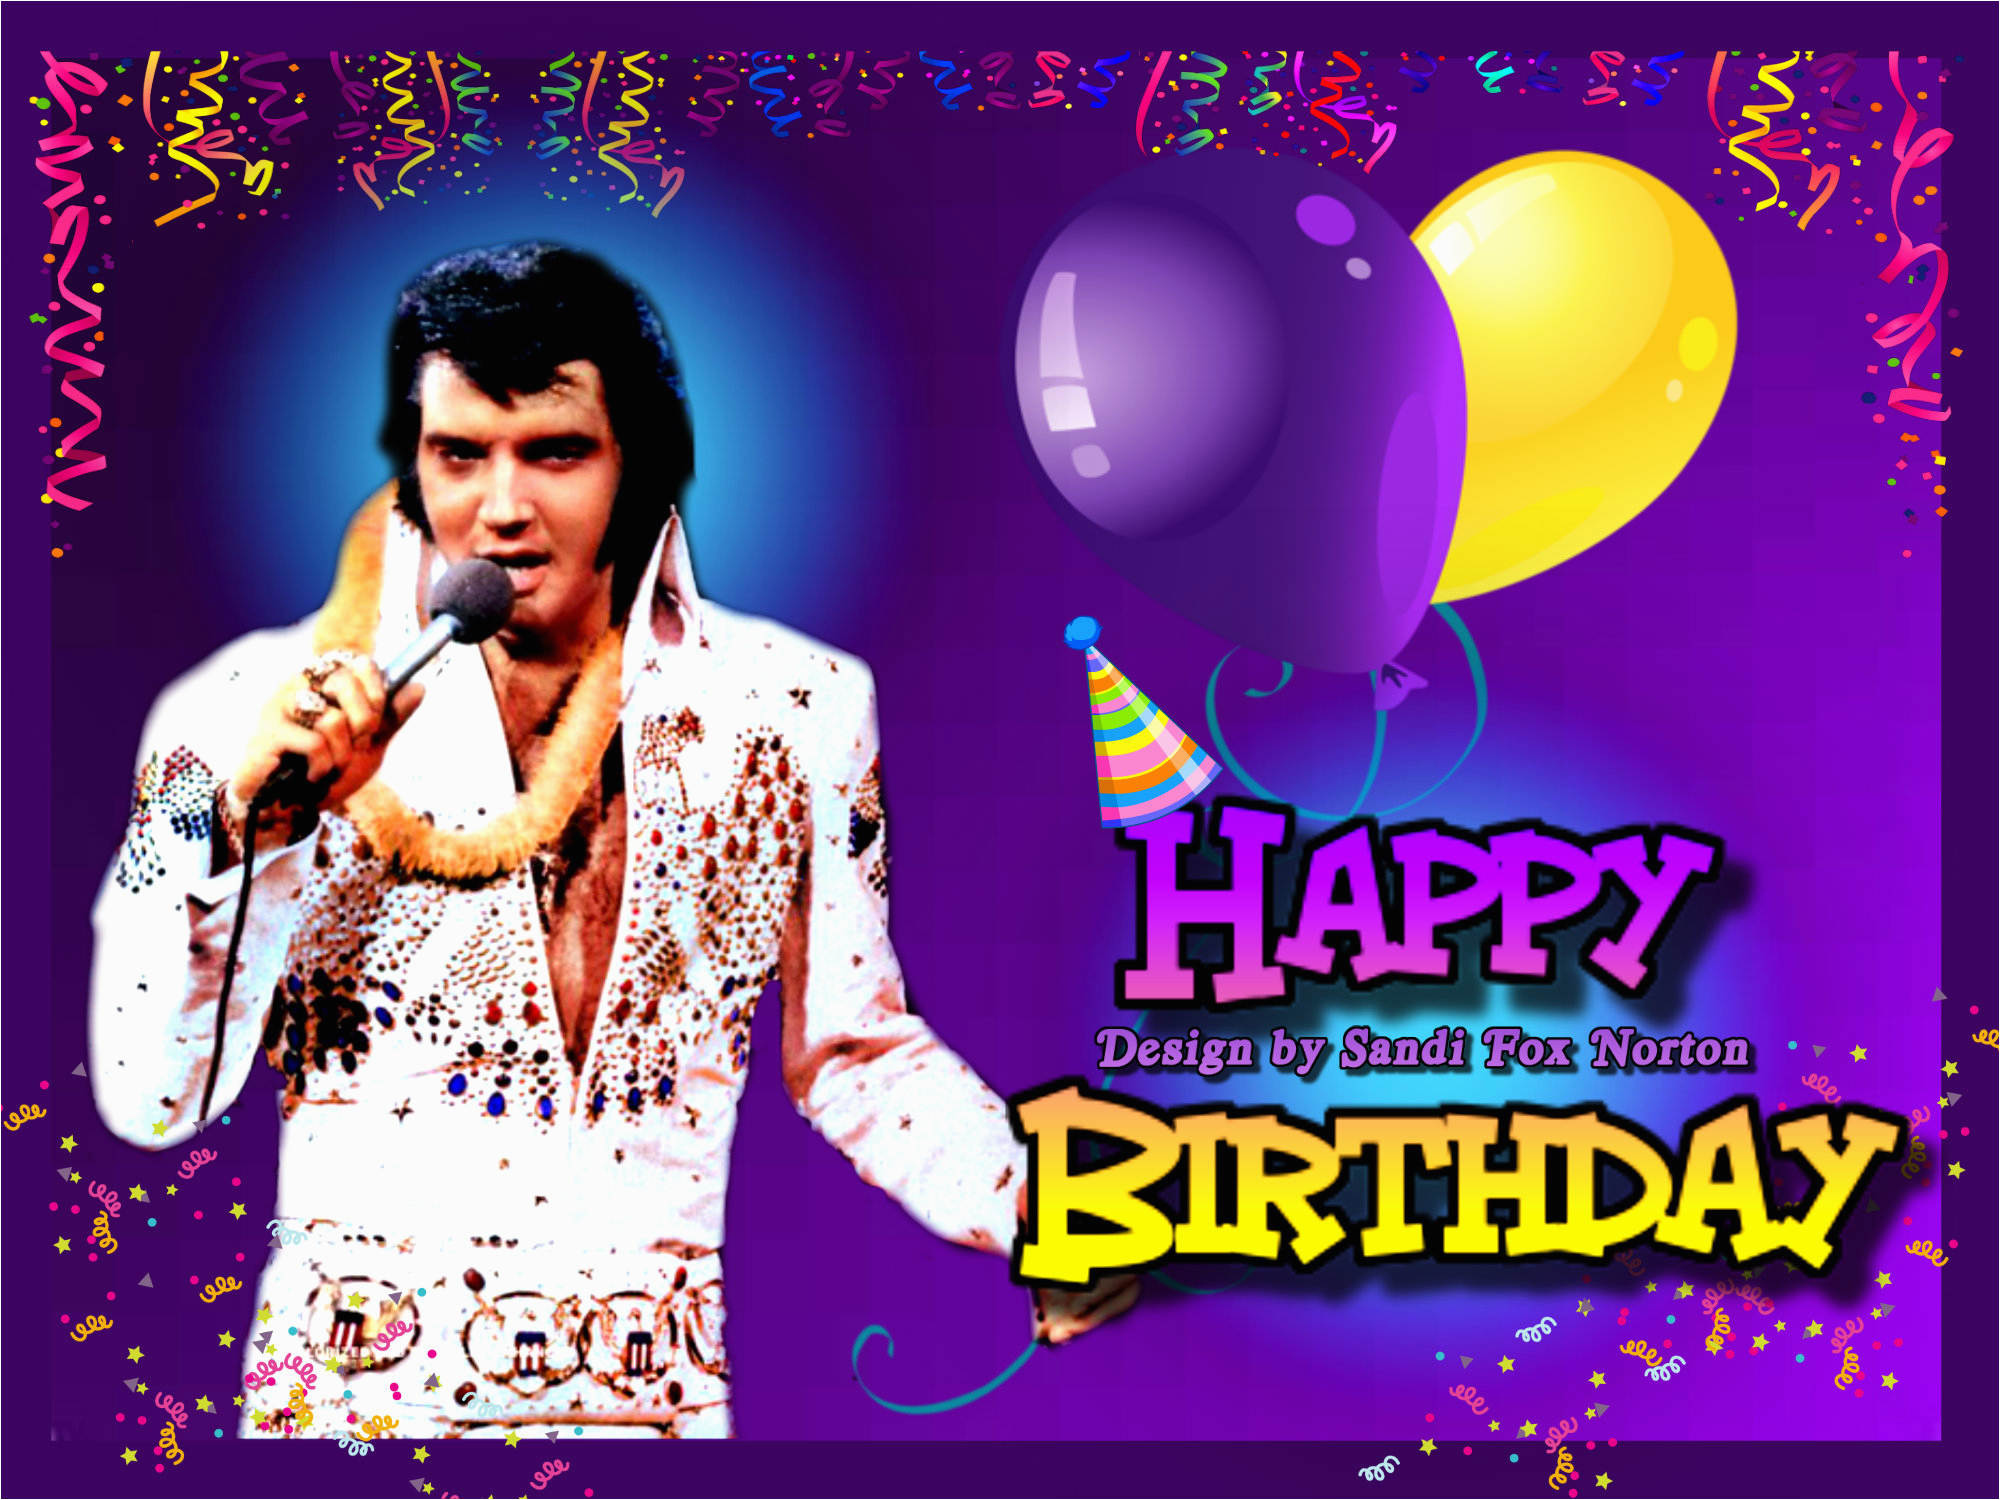 Singing Birthday Cards Online Free For Facebook Pertaining To